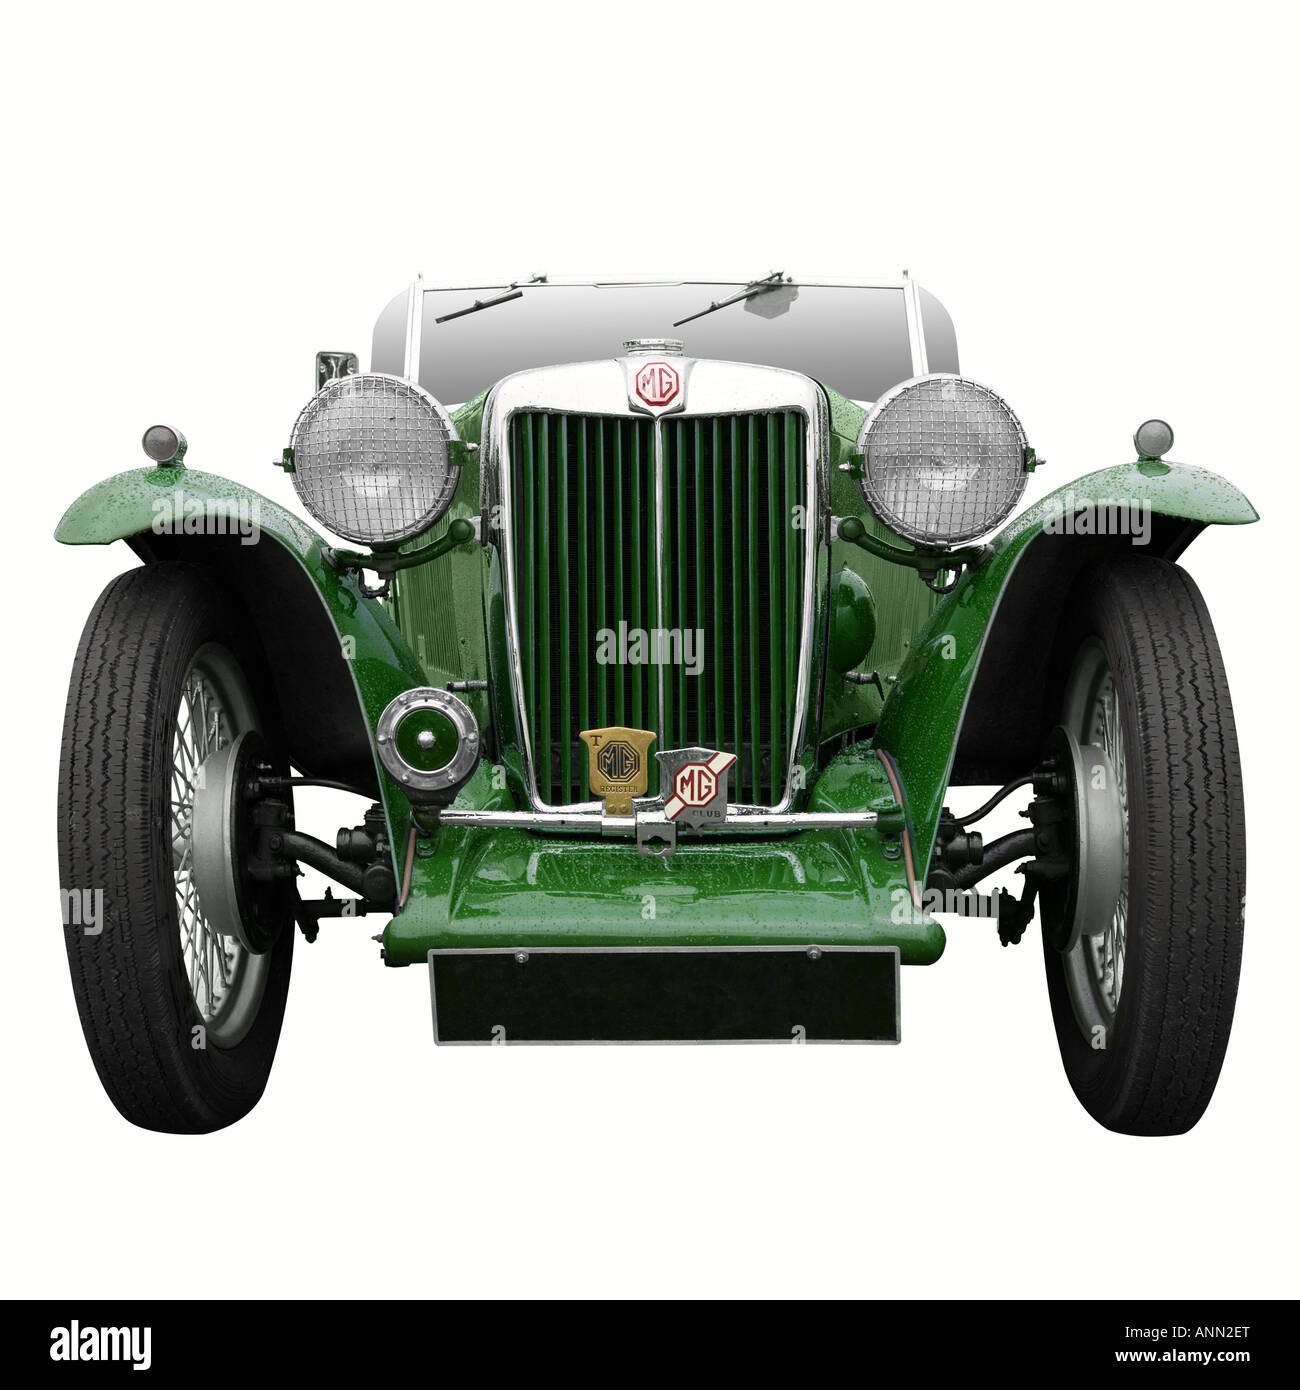 A Vintage MG sports car in British Racing Green isolated on white - Stock Image